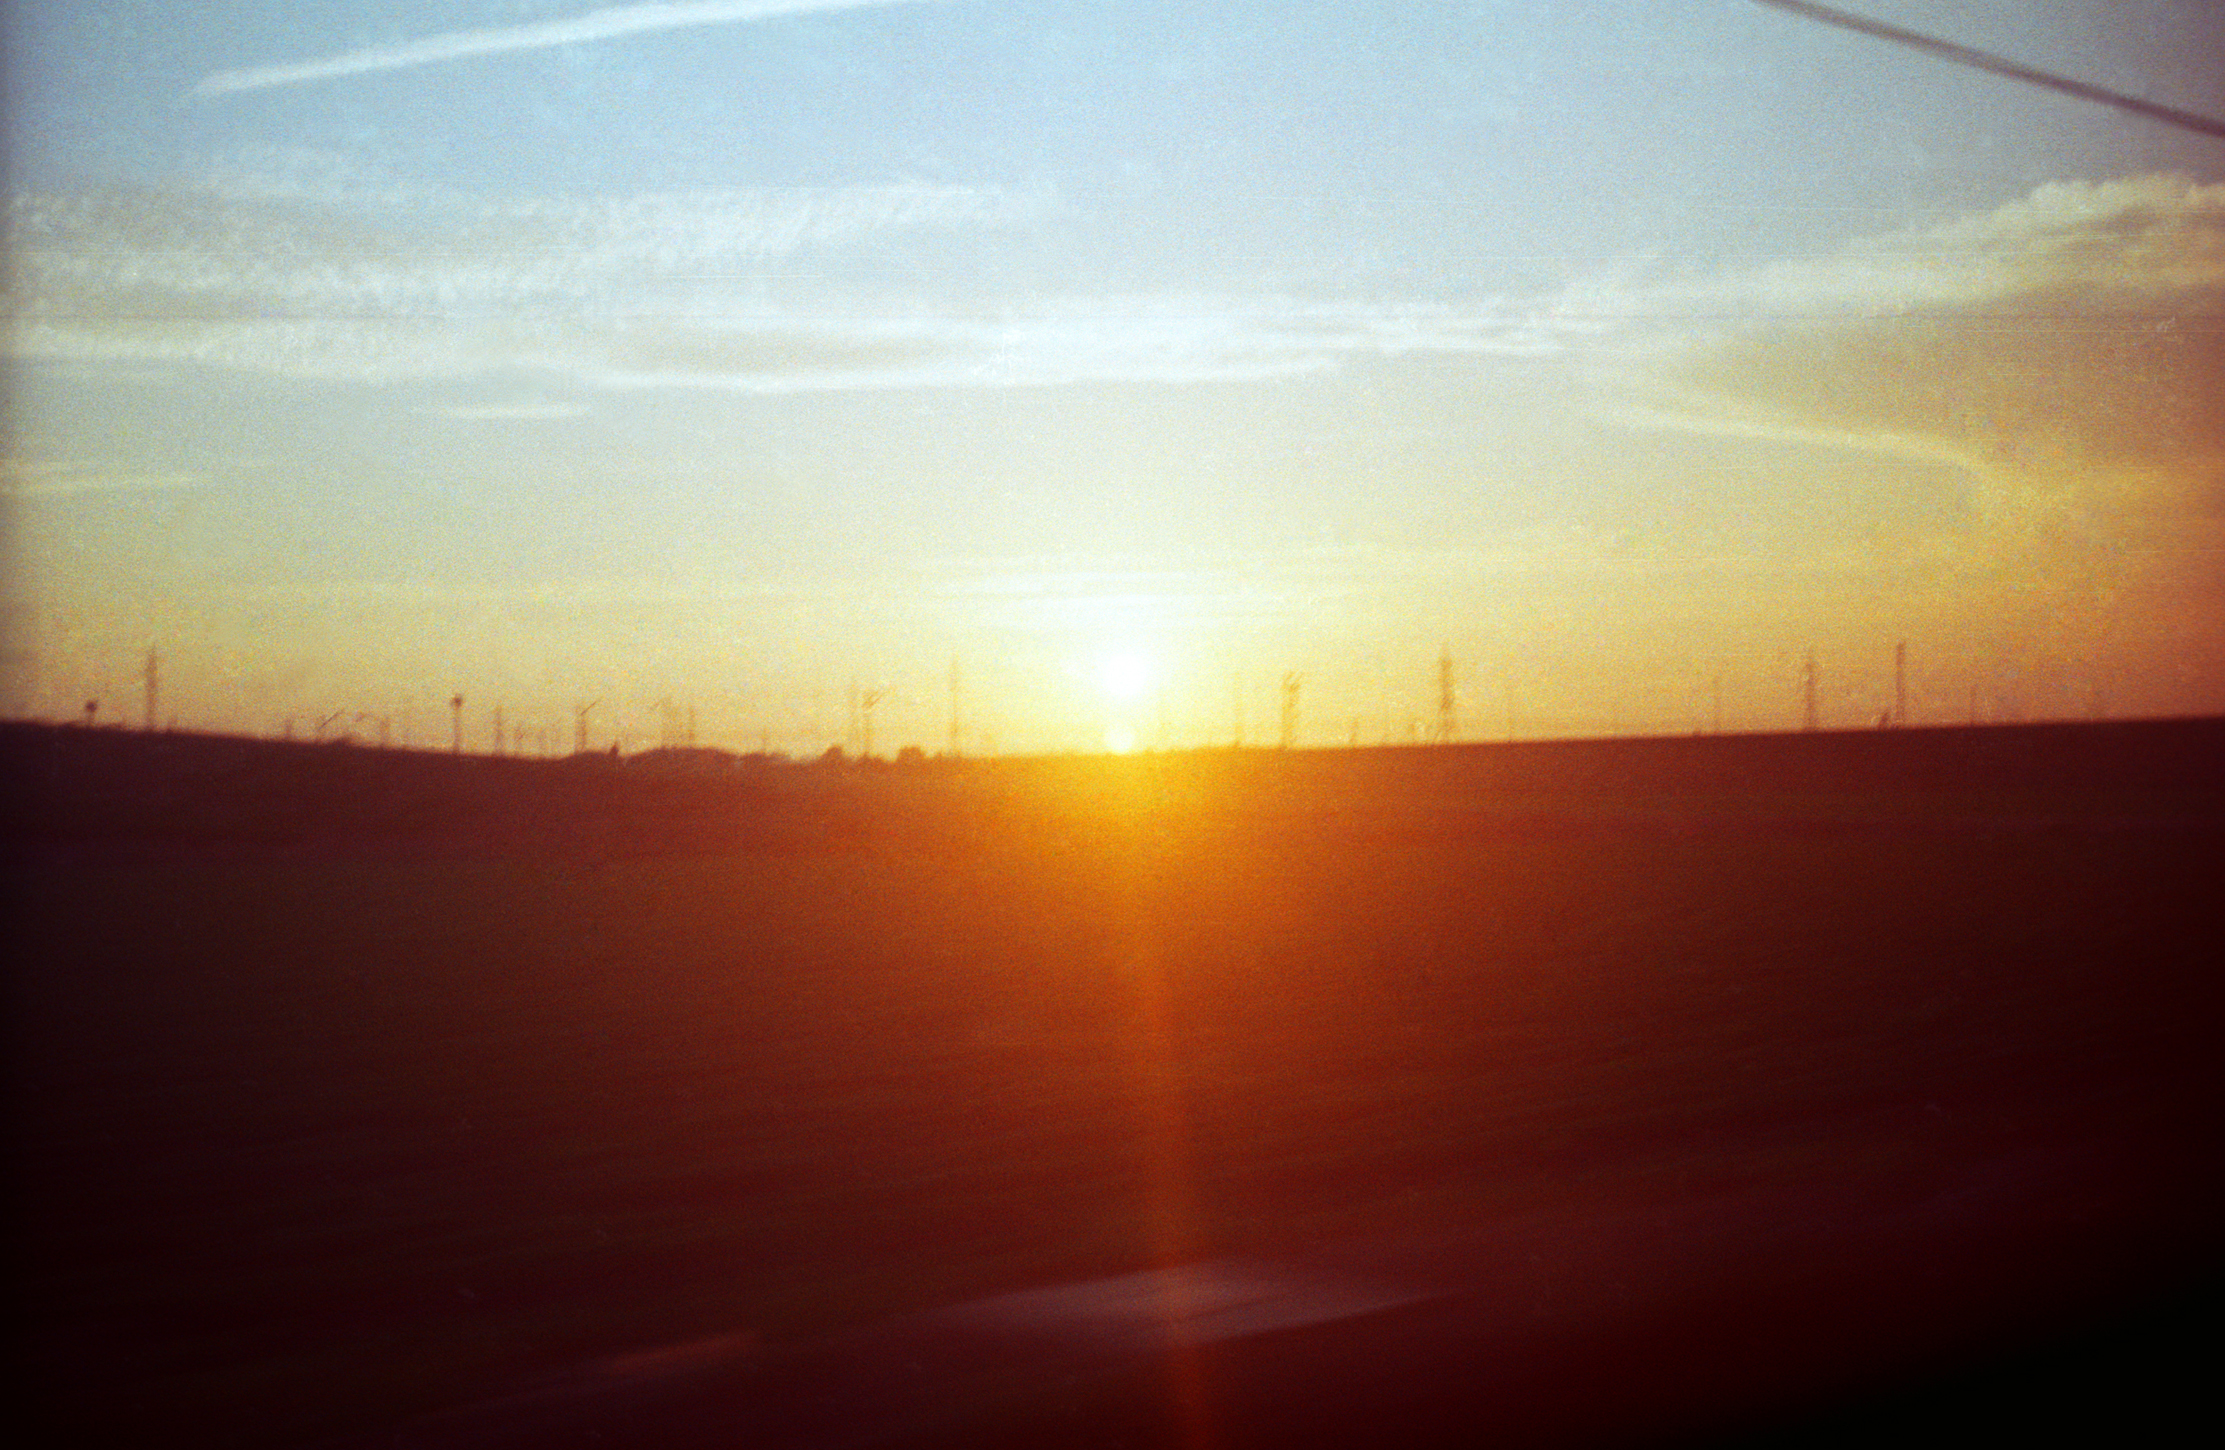 Sunset over the Spanish countryside on the night train